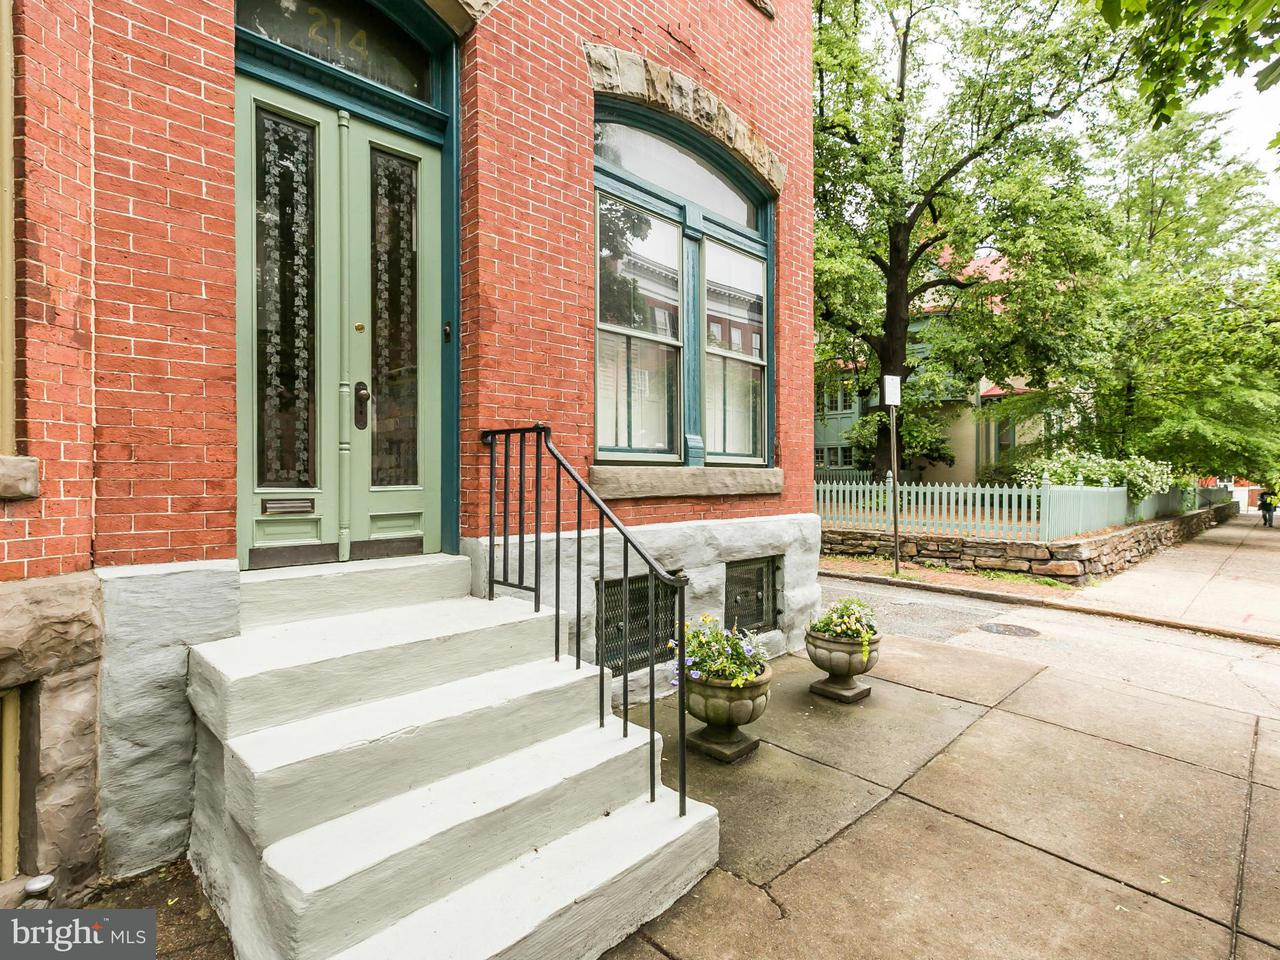 Other Residential for Rent at 214 Lanvale St W Baltimore, Maryland 21217 United States